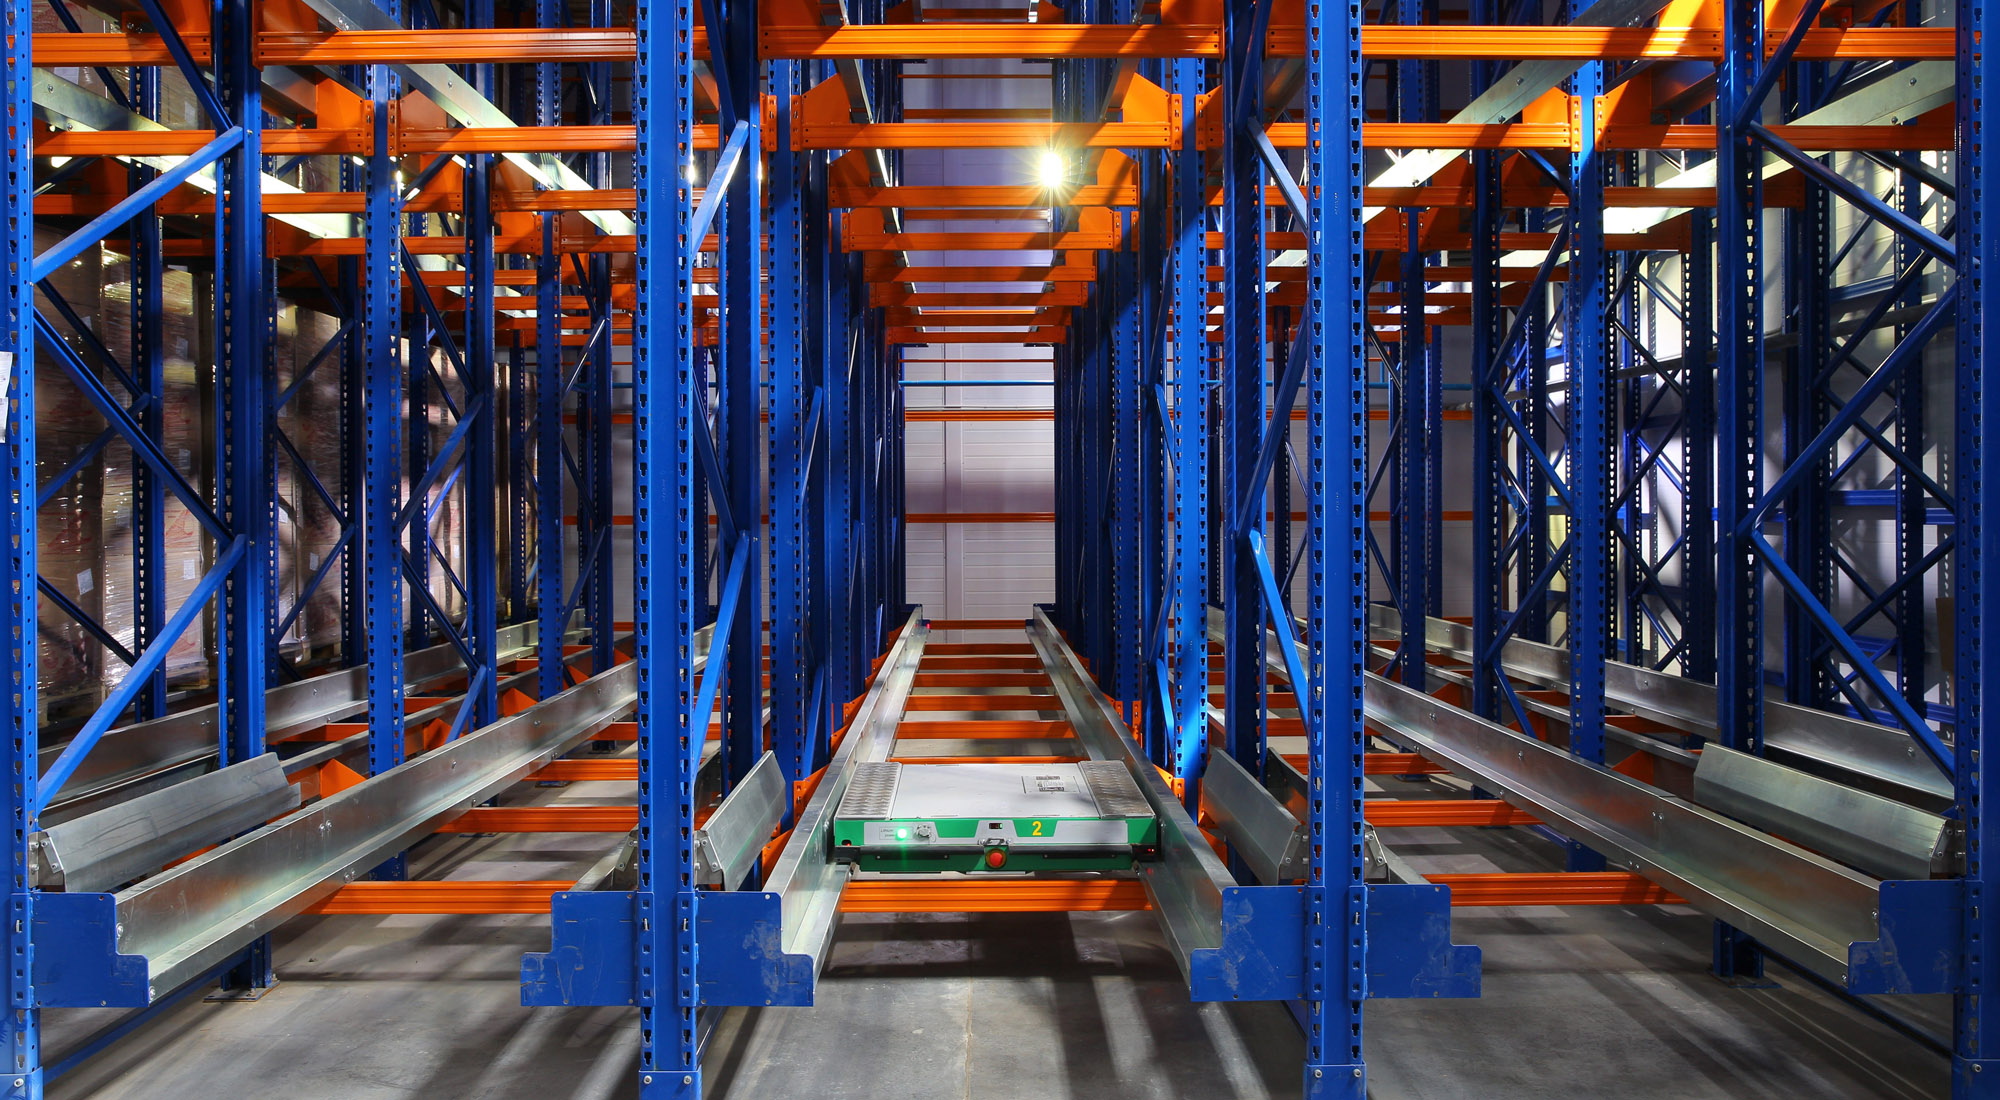 Racking, Shelving and Storage Equipment